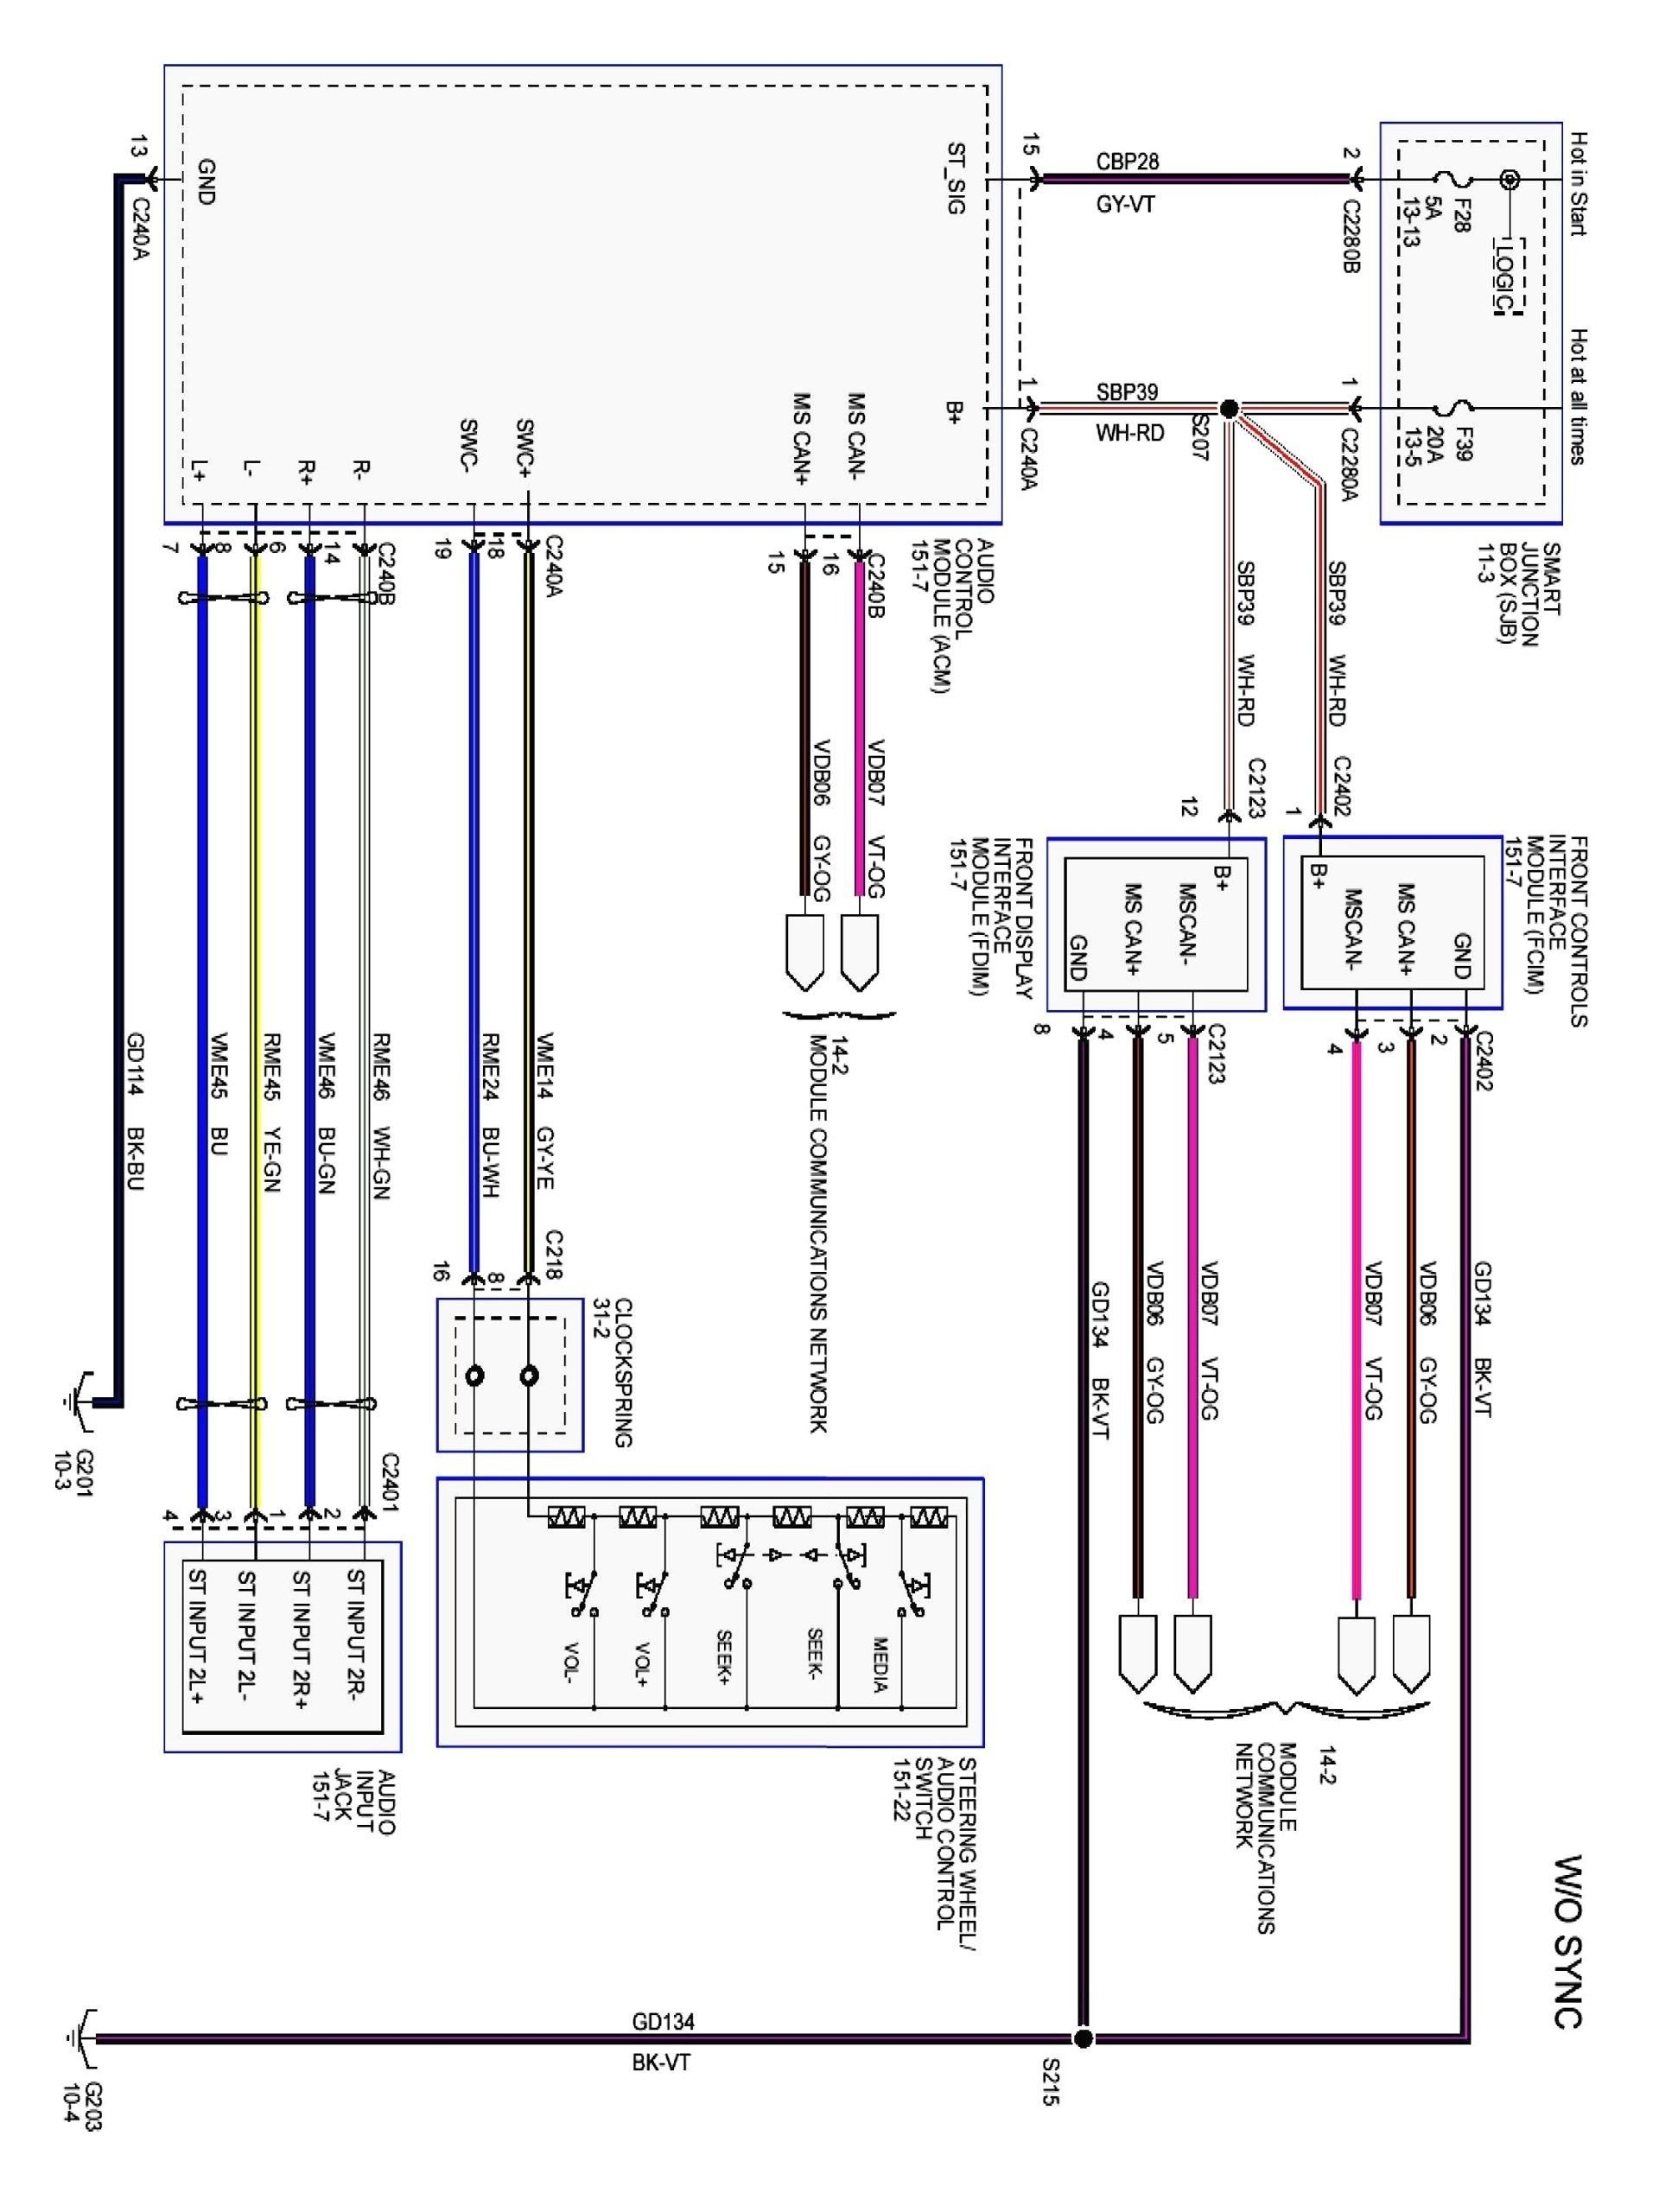 Wiring Diagram for Audi A4 towbar #diagram #diagramtemplate #diagramsample  | Alarmas para autos, Jetta a4, Auto volkswagen | Audi B7 Wiring Diagram |  | Pinterest